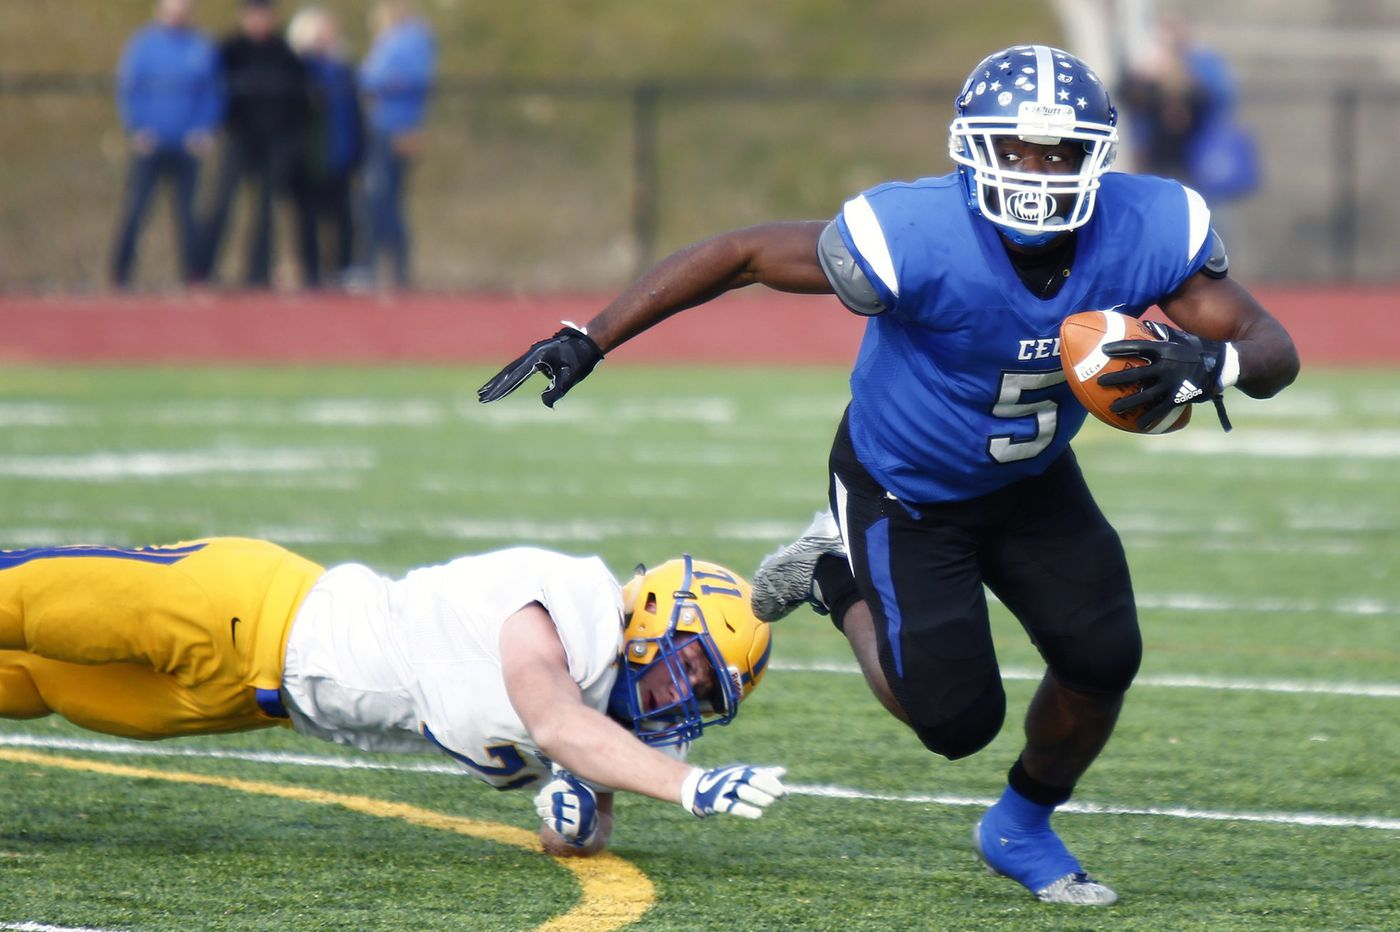 Conwell-Egan's Patrick Garwo is top rusher | Southeastern Pa. Football Leaders